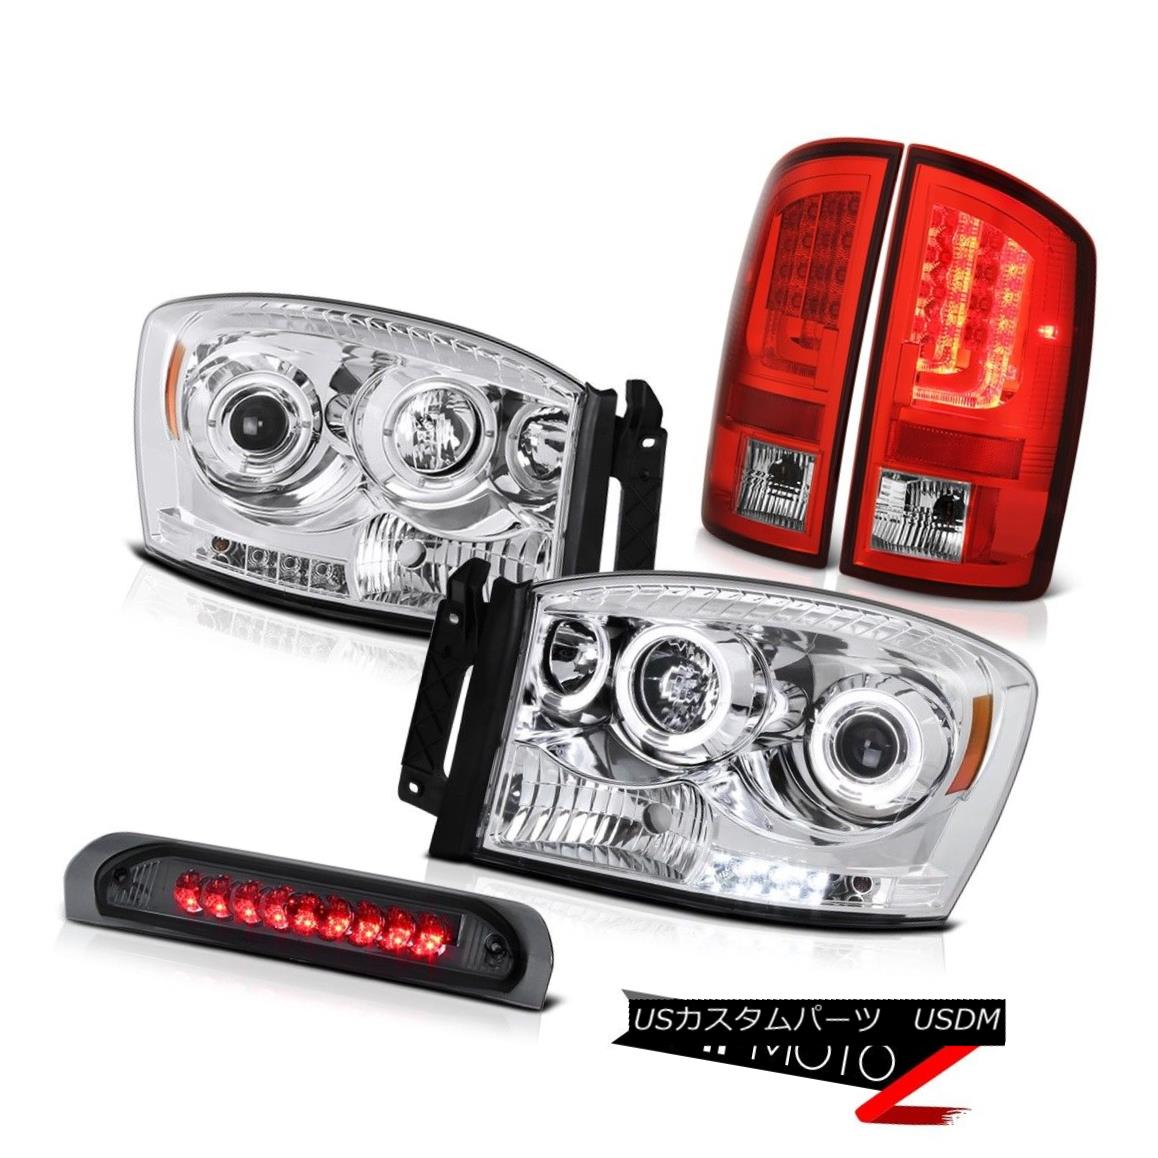 テールライト 2006 Dodge Ram Red Taillights Headlights High STop Lamp Dual Halo